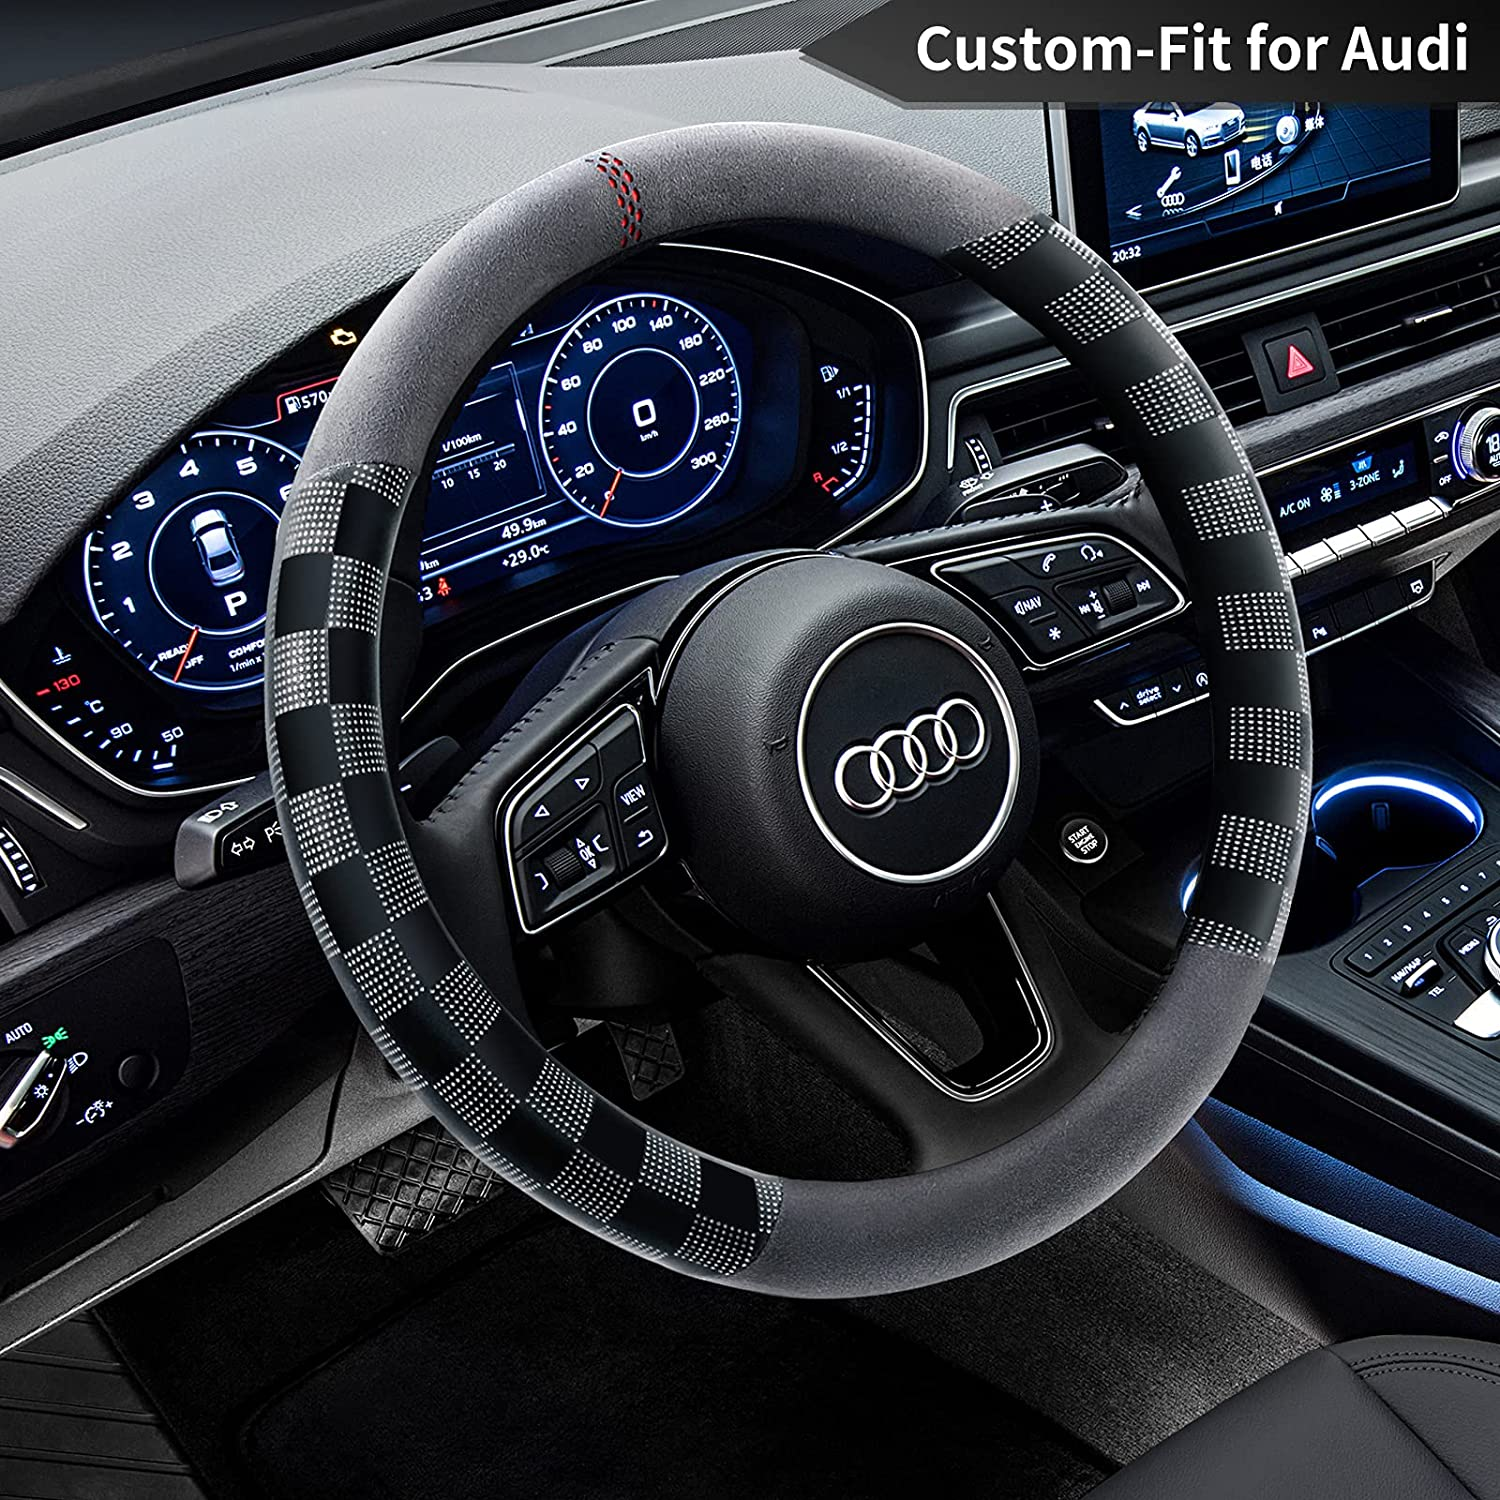 Car Steering Wheel Cover Max 54% OFF Some reservation for Route Microfibe Audi Non-Slip Deer